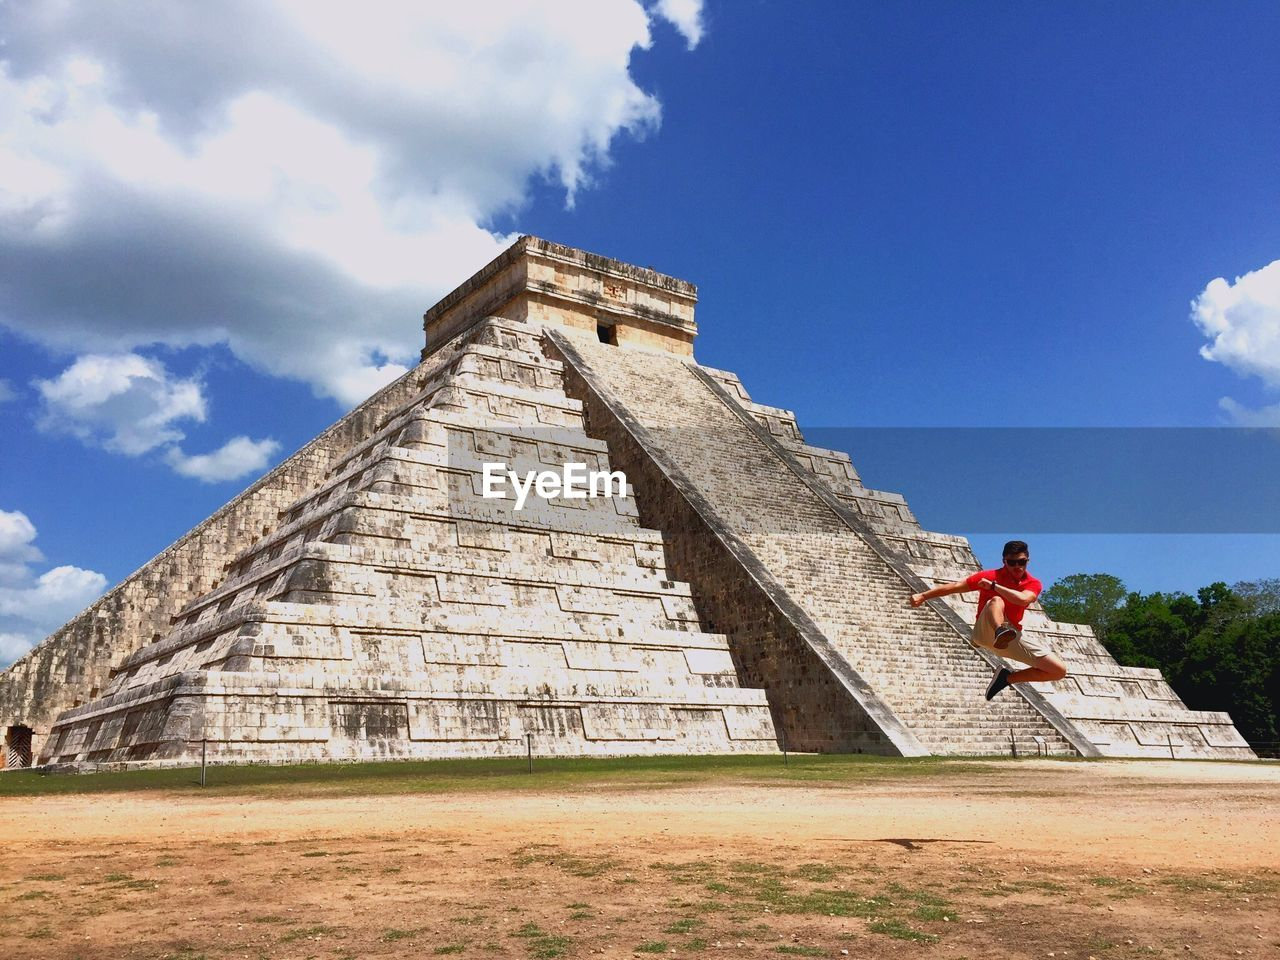 architecture, history, the past, built structure, sky, pyramid, tourism, travel, one person, ancient, travel destinations, nature, real people, cloud - sky, full length, day, lifestyles, building exterior, leisure activity, ancient civilization, archaeology, outdoors